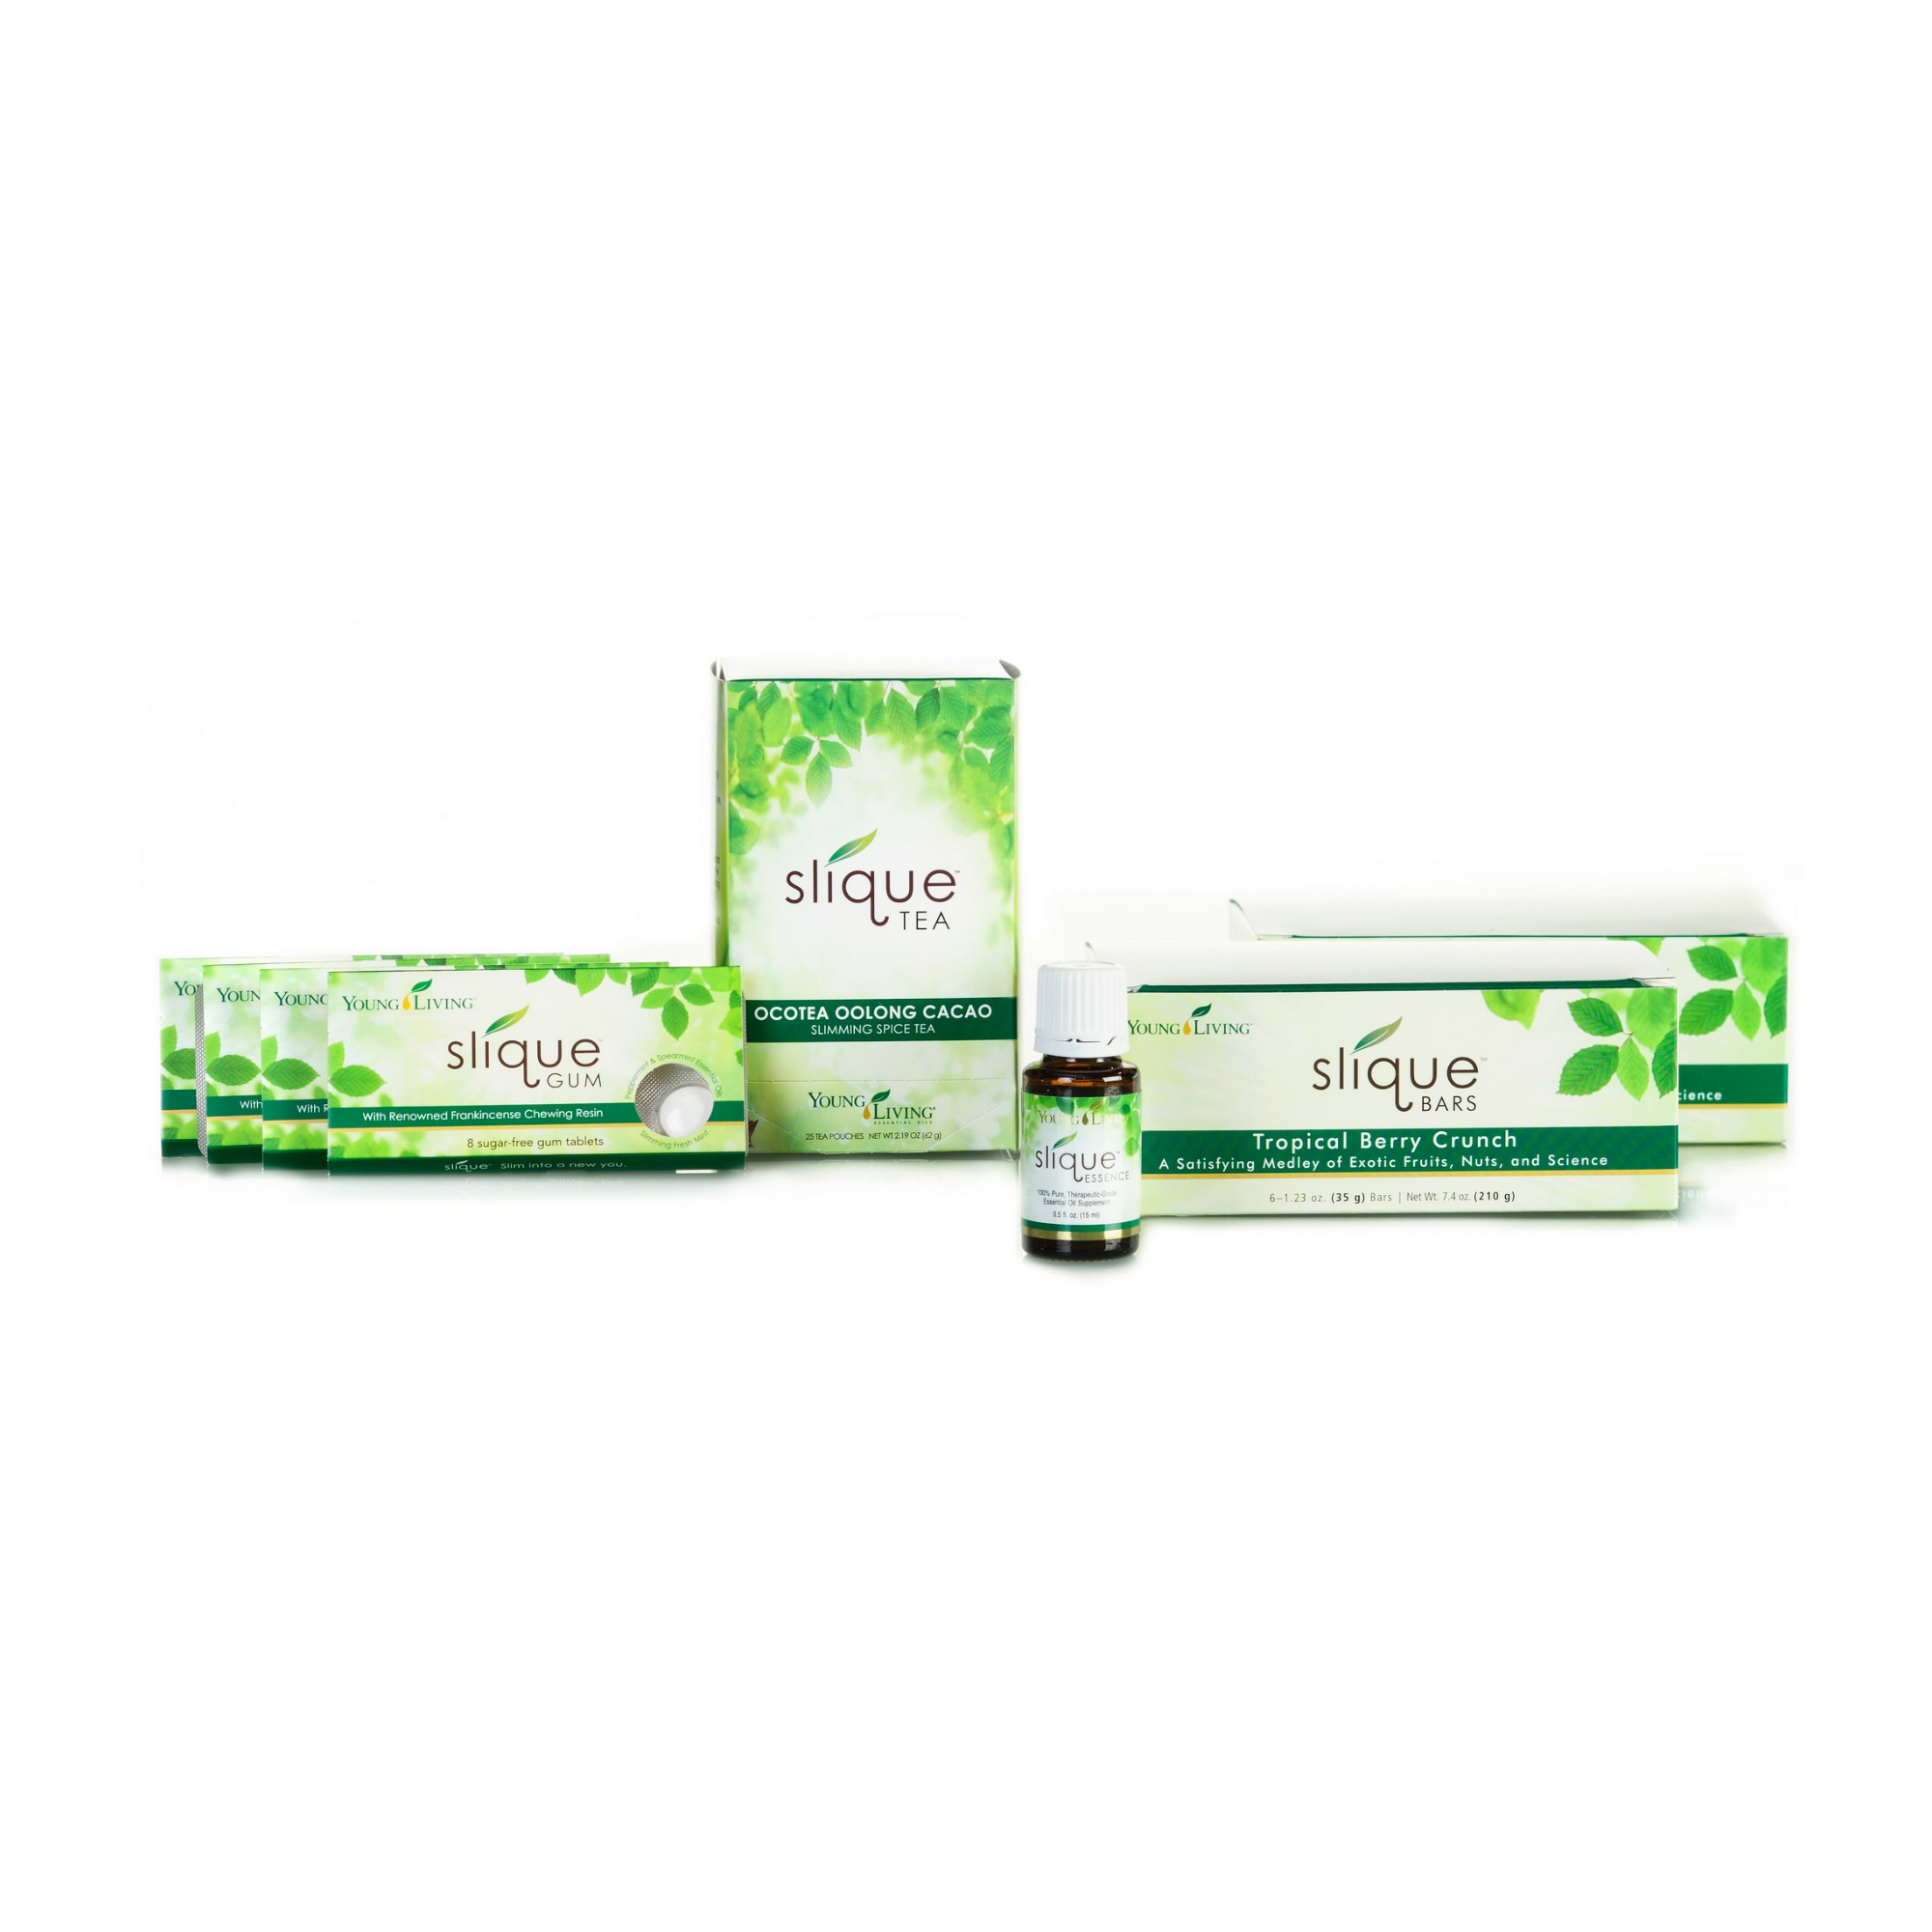 SLIQUE ASSIST    For a little help slimming into the new you, Slique® Assist includes the Slique Maintain collection, plus delicious Slique Tea and Slique Gum. Slique Assist includes: (1) Slique Tea, 25 ct. (3) Slique Gum, 8 ct. (1) 15-ml Slique Essence (1) Slique CitraSlim (15-Day Supply) Scroll down to learn more about each product individually.   Click here   to learn more about this product.